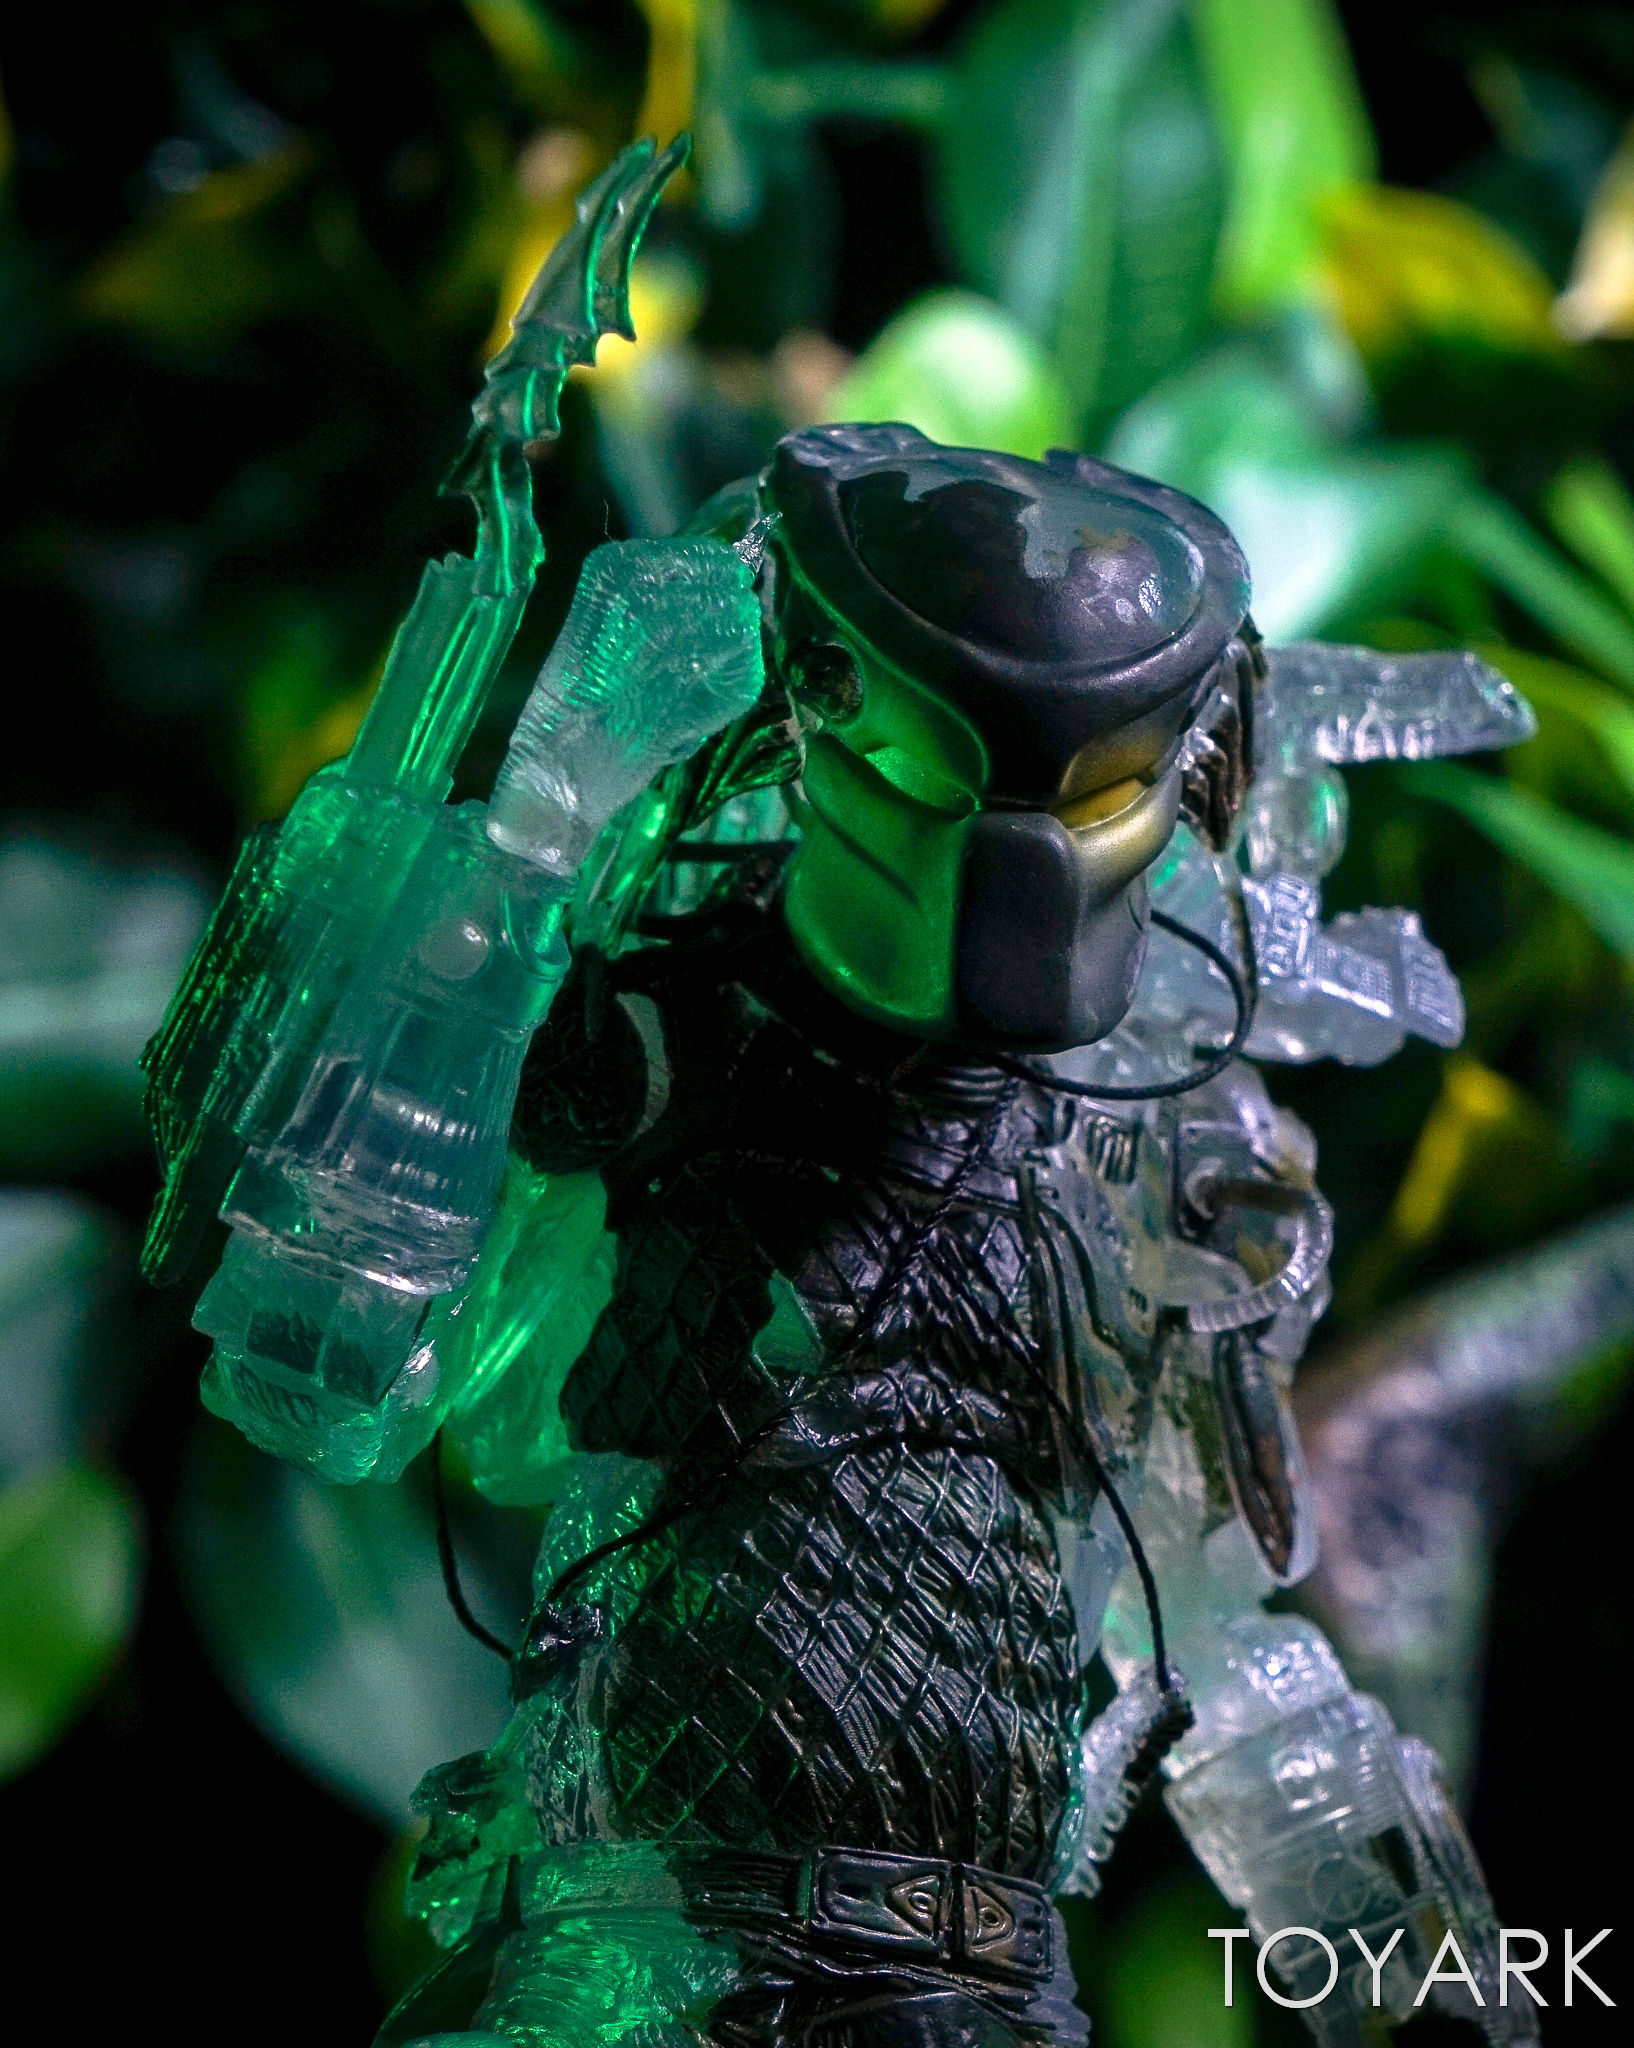 http://news.toyark.com/wp-content/uploads/sites/4/2017/03/NECA-Jungle-Demon-Predator-031.jpg